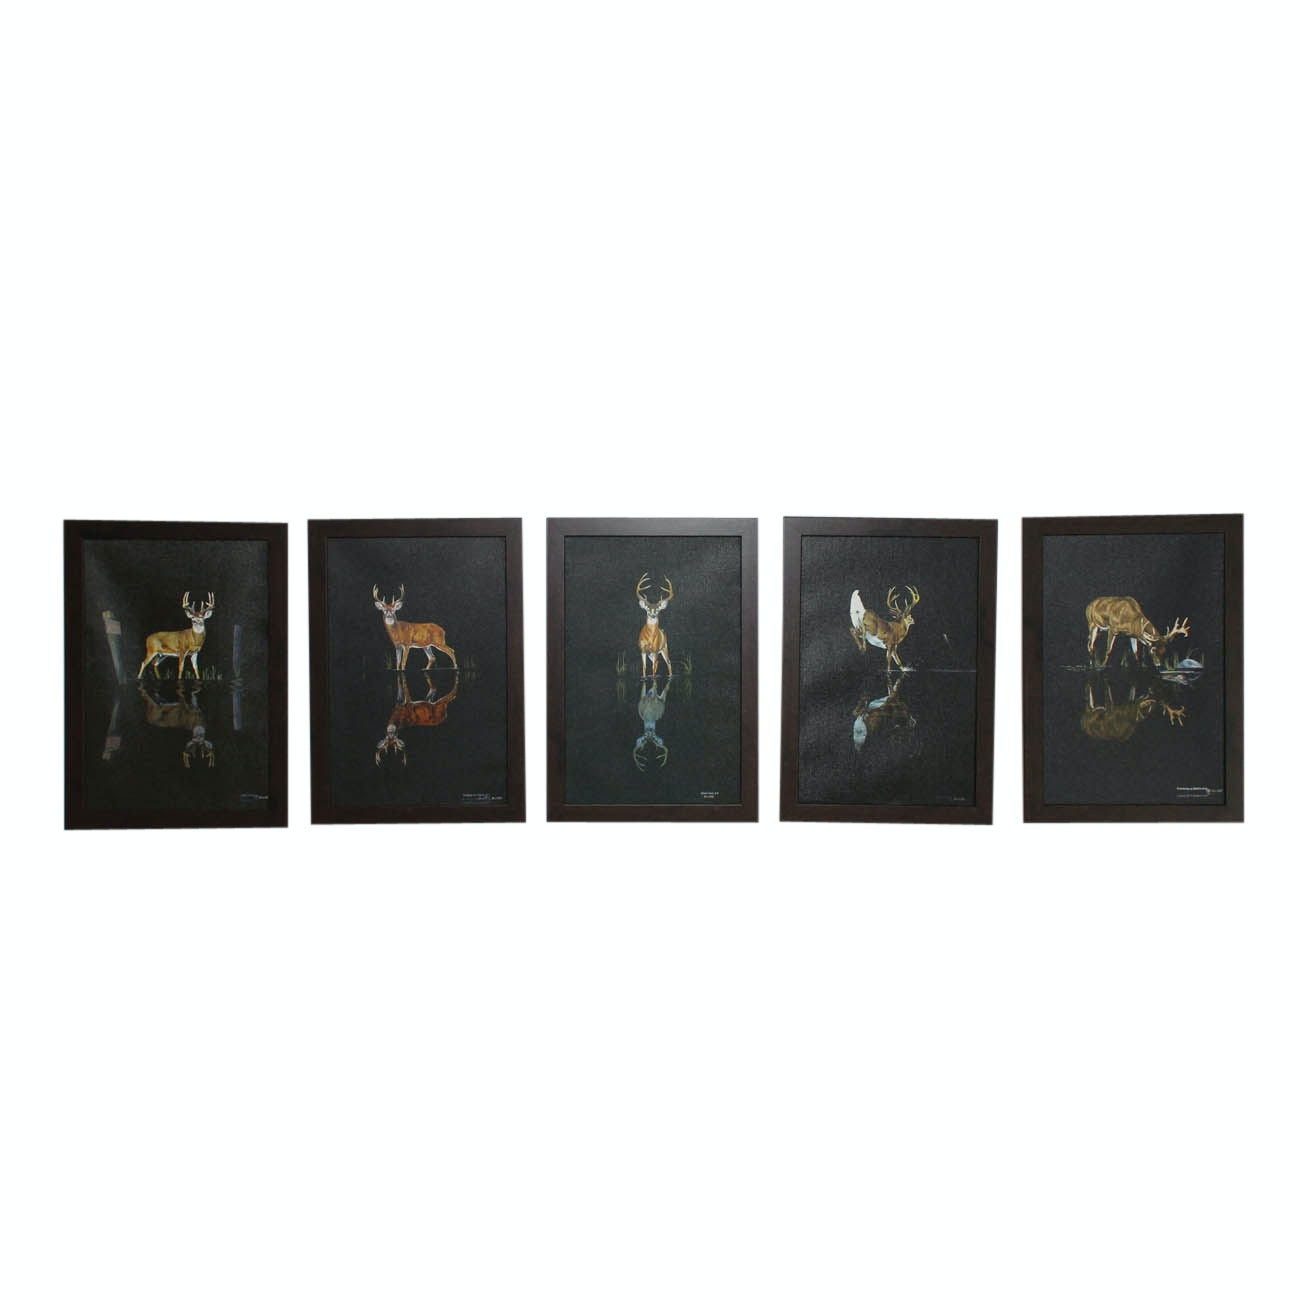 Charles H. Denault Limited Edition Giclee Prints